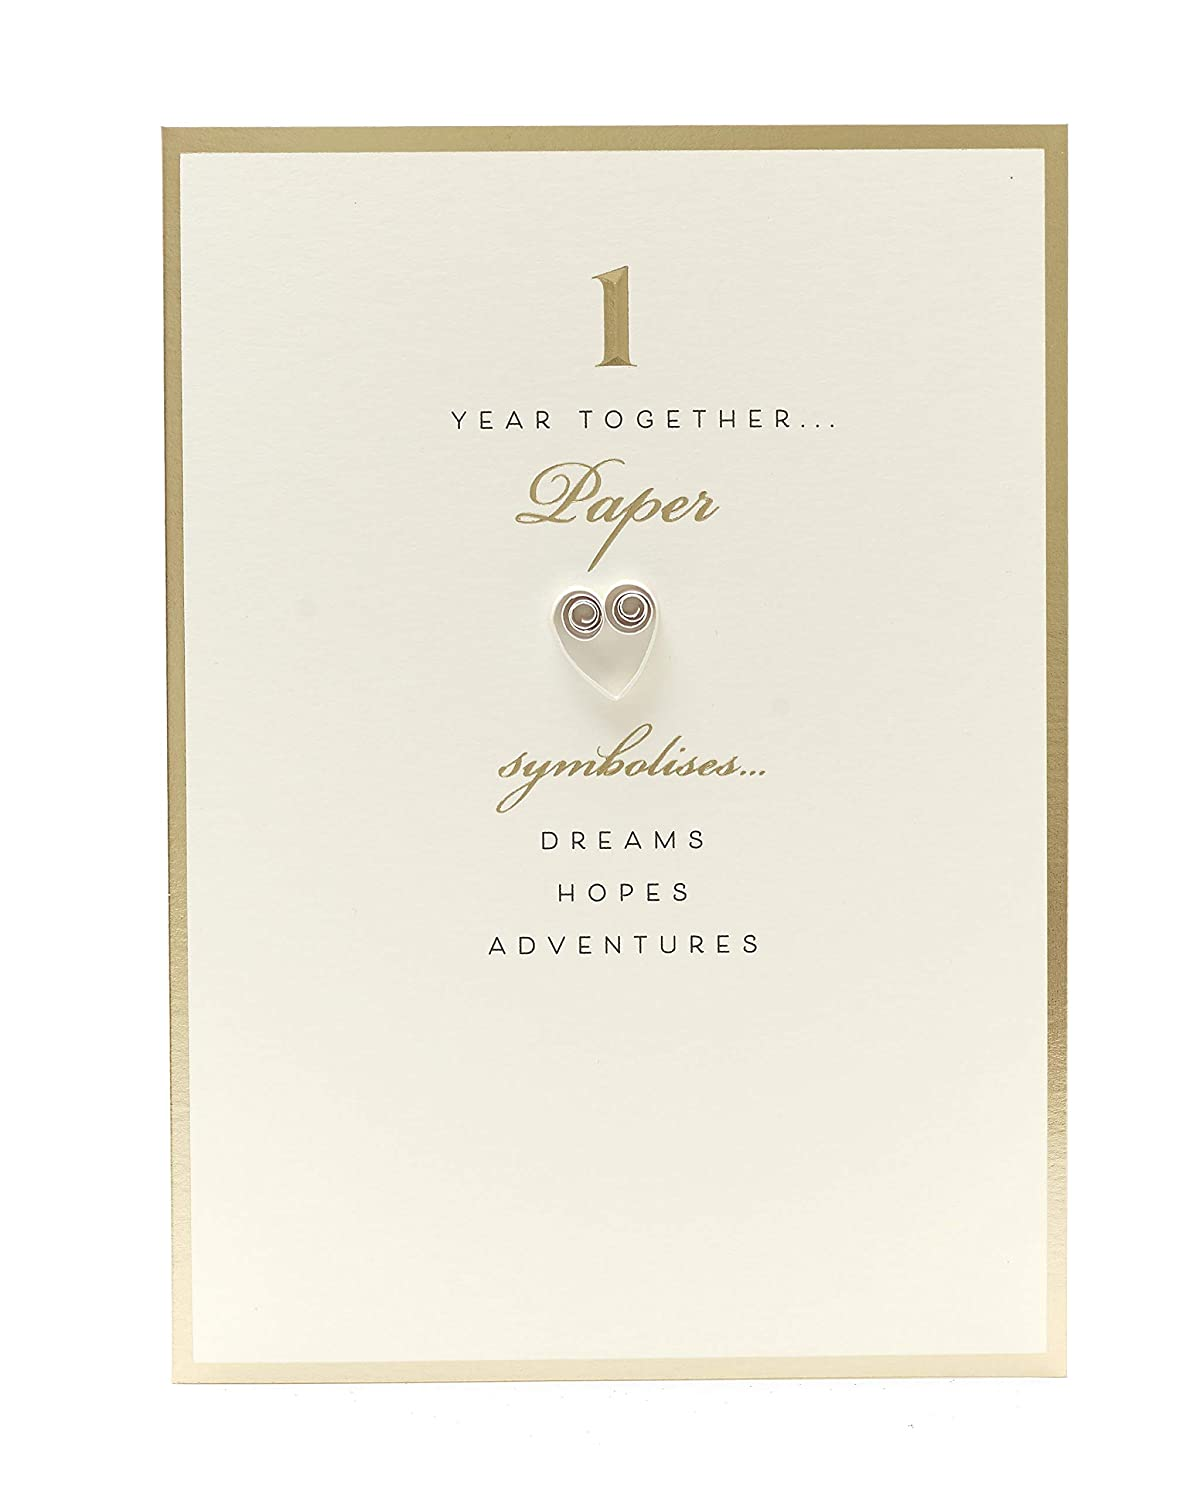 1 Year Wedding Anniversary Gifts For Her.1st Anniversary Card 1st Anniversary Gifts Wedding Anniversary Card Anniversary Gifts Anniversary Gifts For Him Anniversary Gifts For Her 1 Year